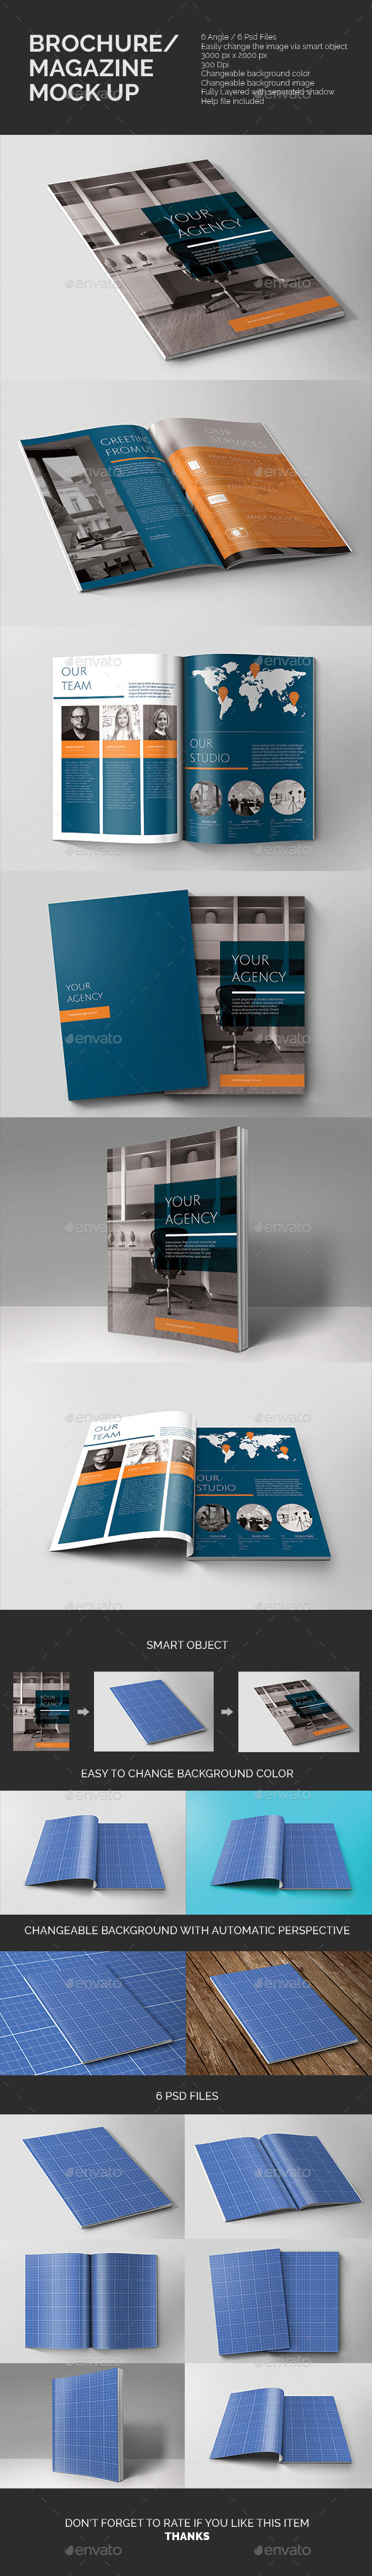 Brochure/Magazine Mock-up - Magazines Print